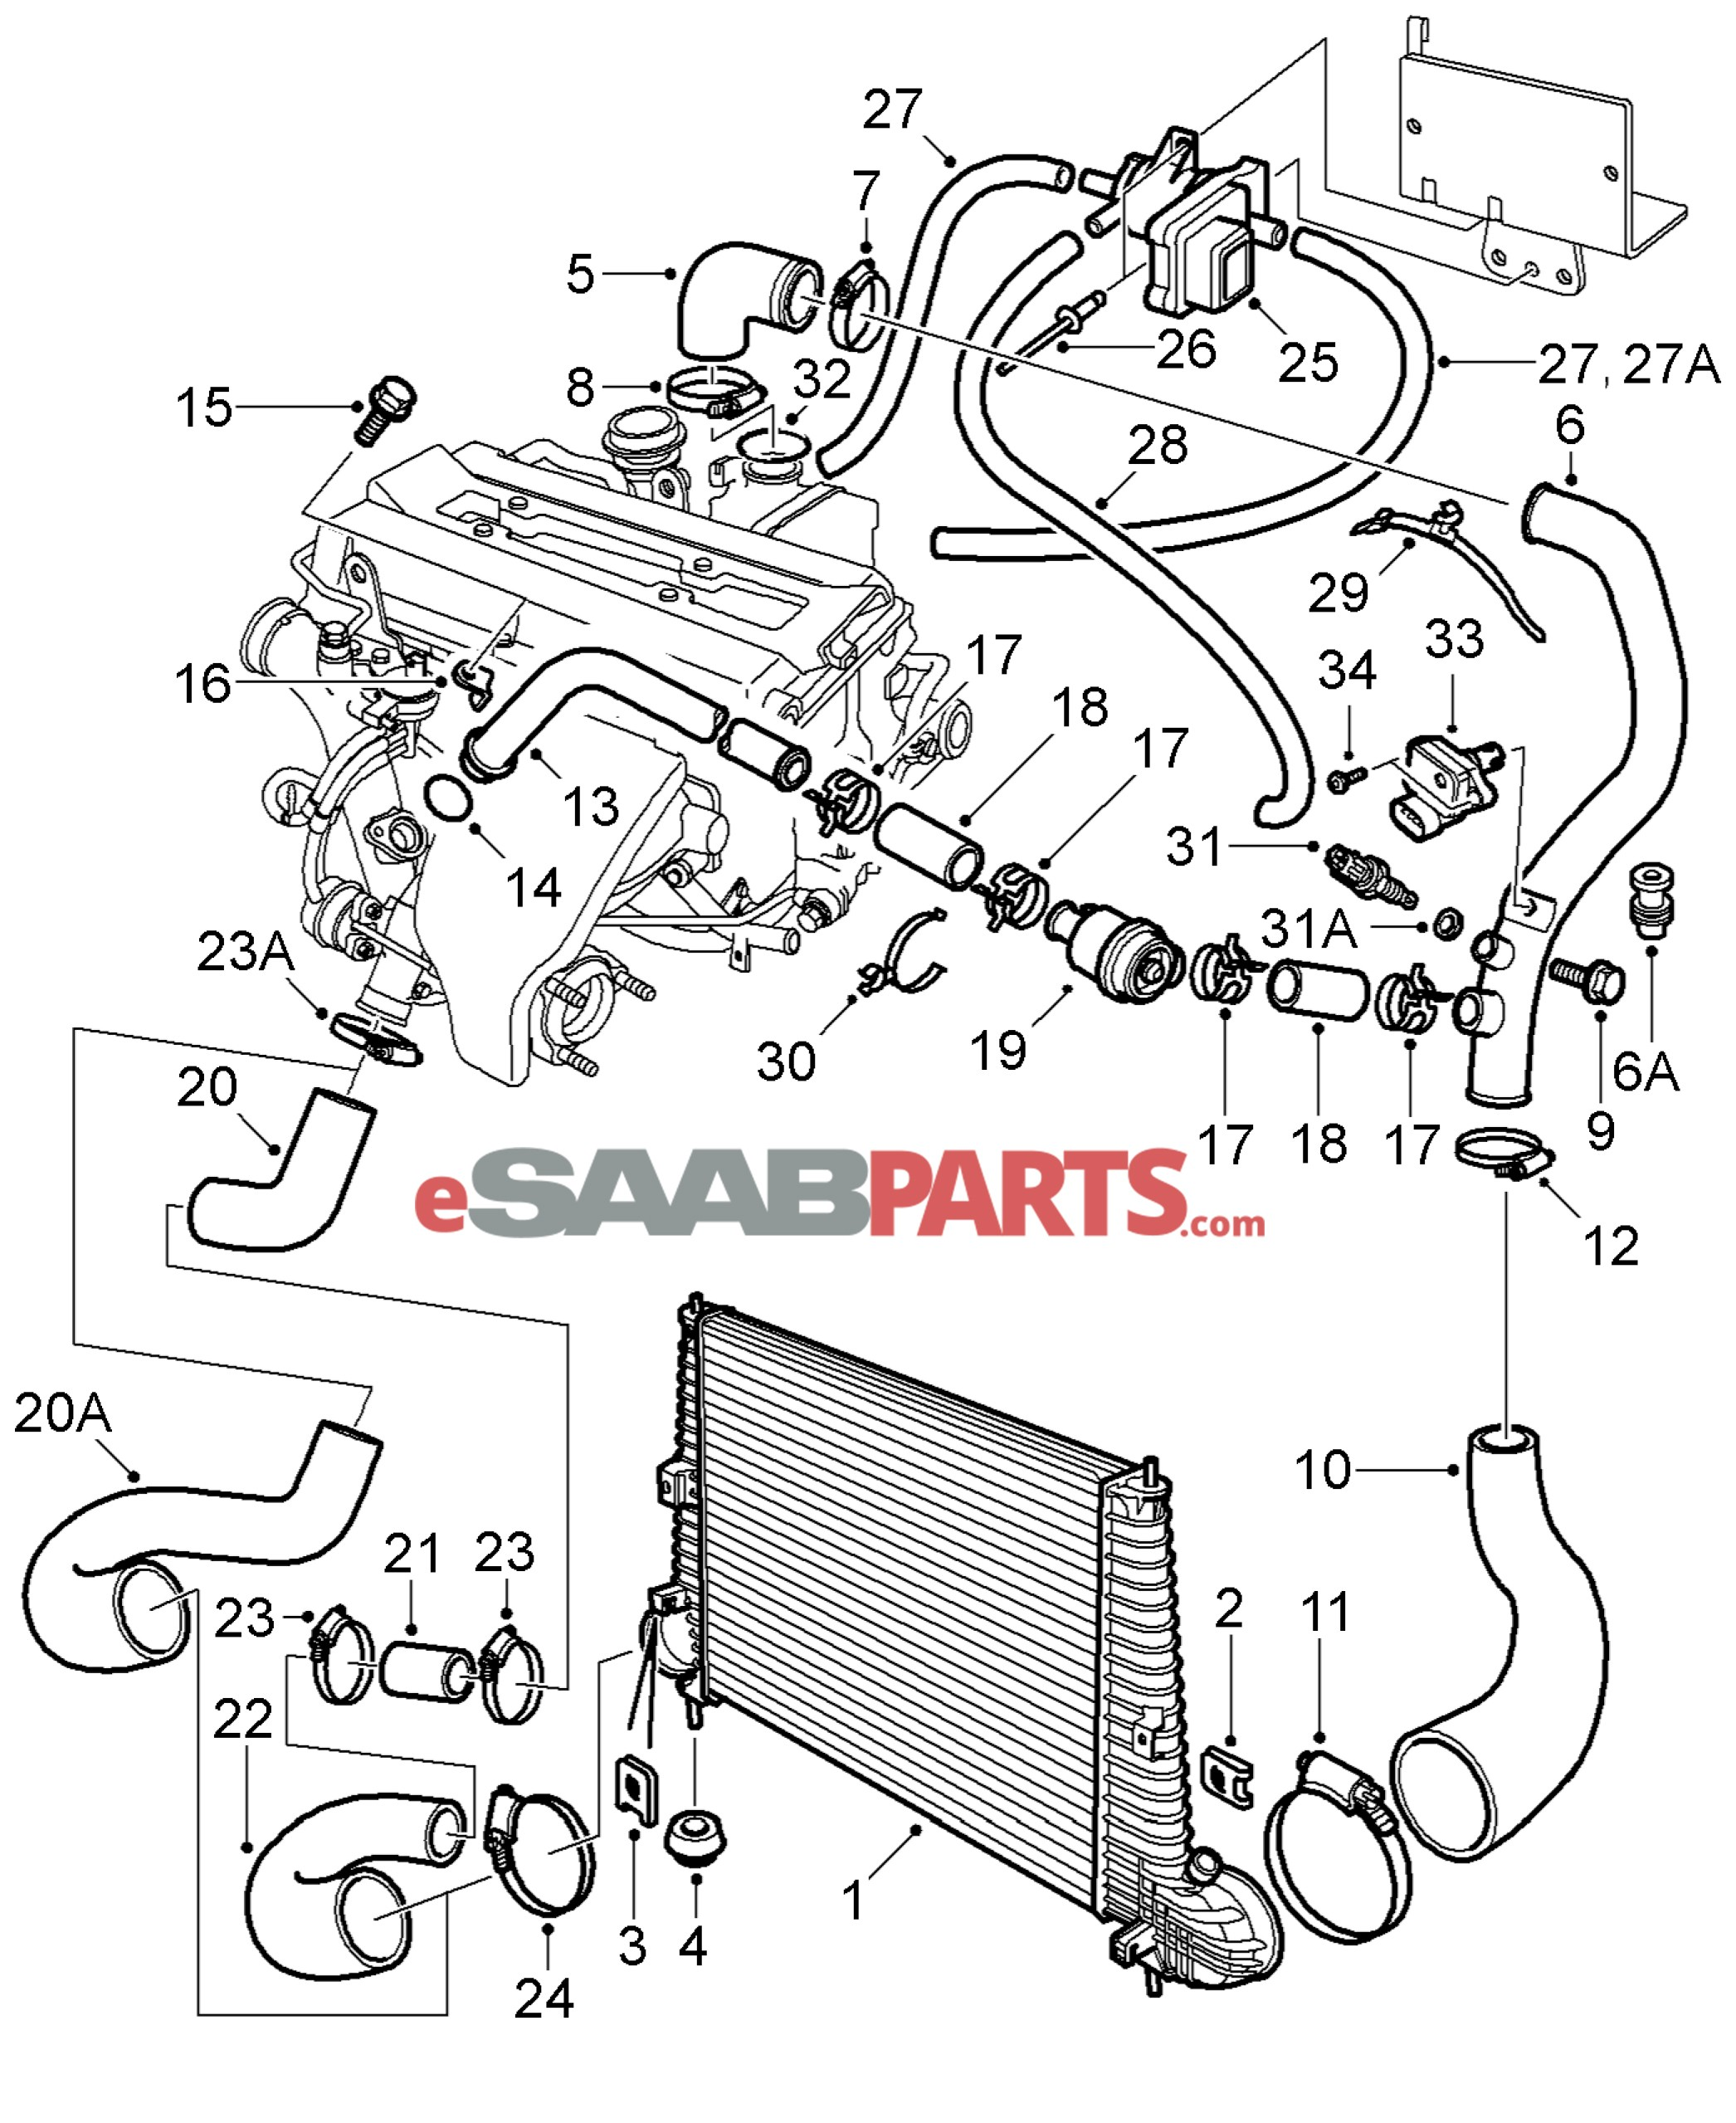 DIAGRAM] Saab 9 3 2005 Fuse Box Diagram FULL Version HD Quality Box Diagram  - M12WIRING148.ELIASVAPO.ITeliasvapo.it